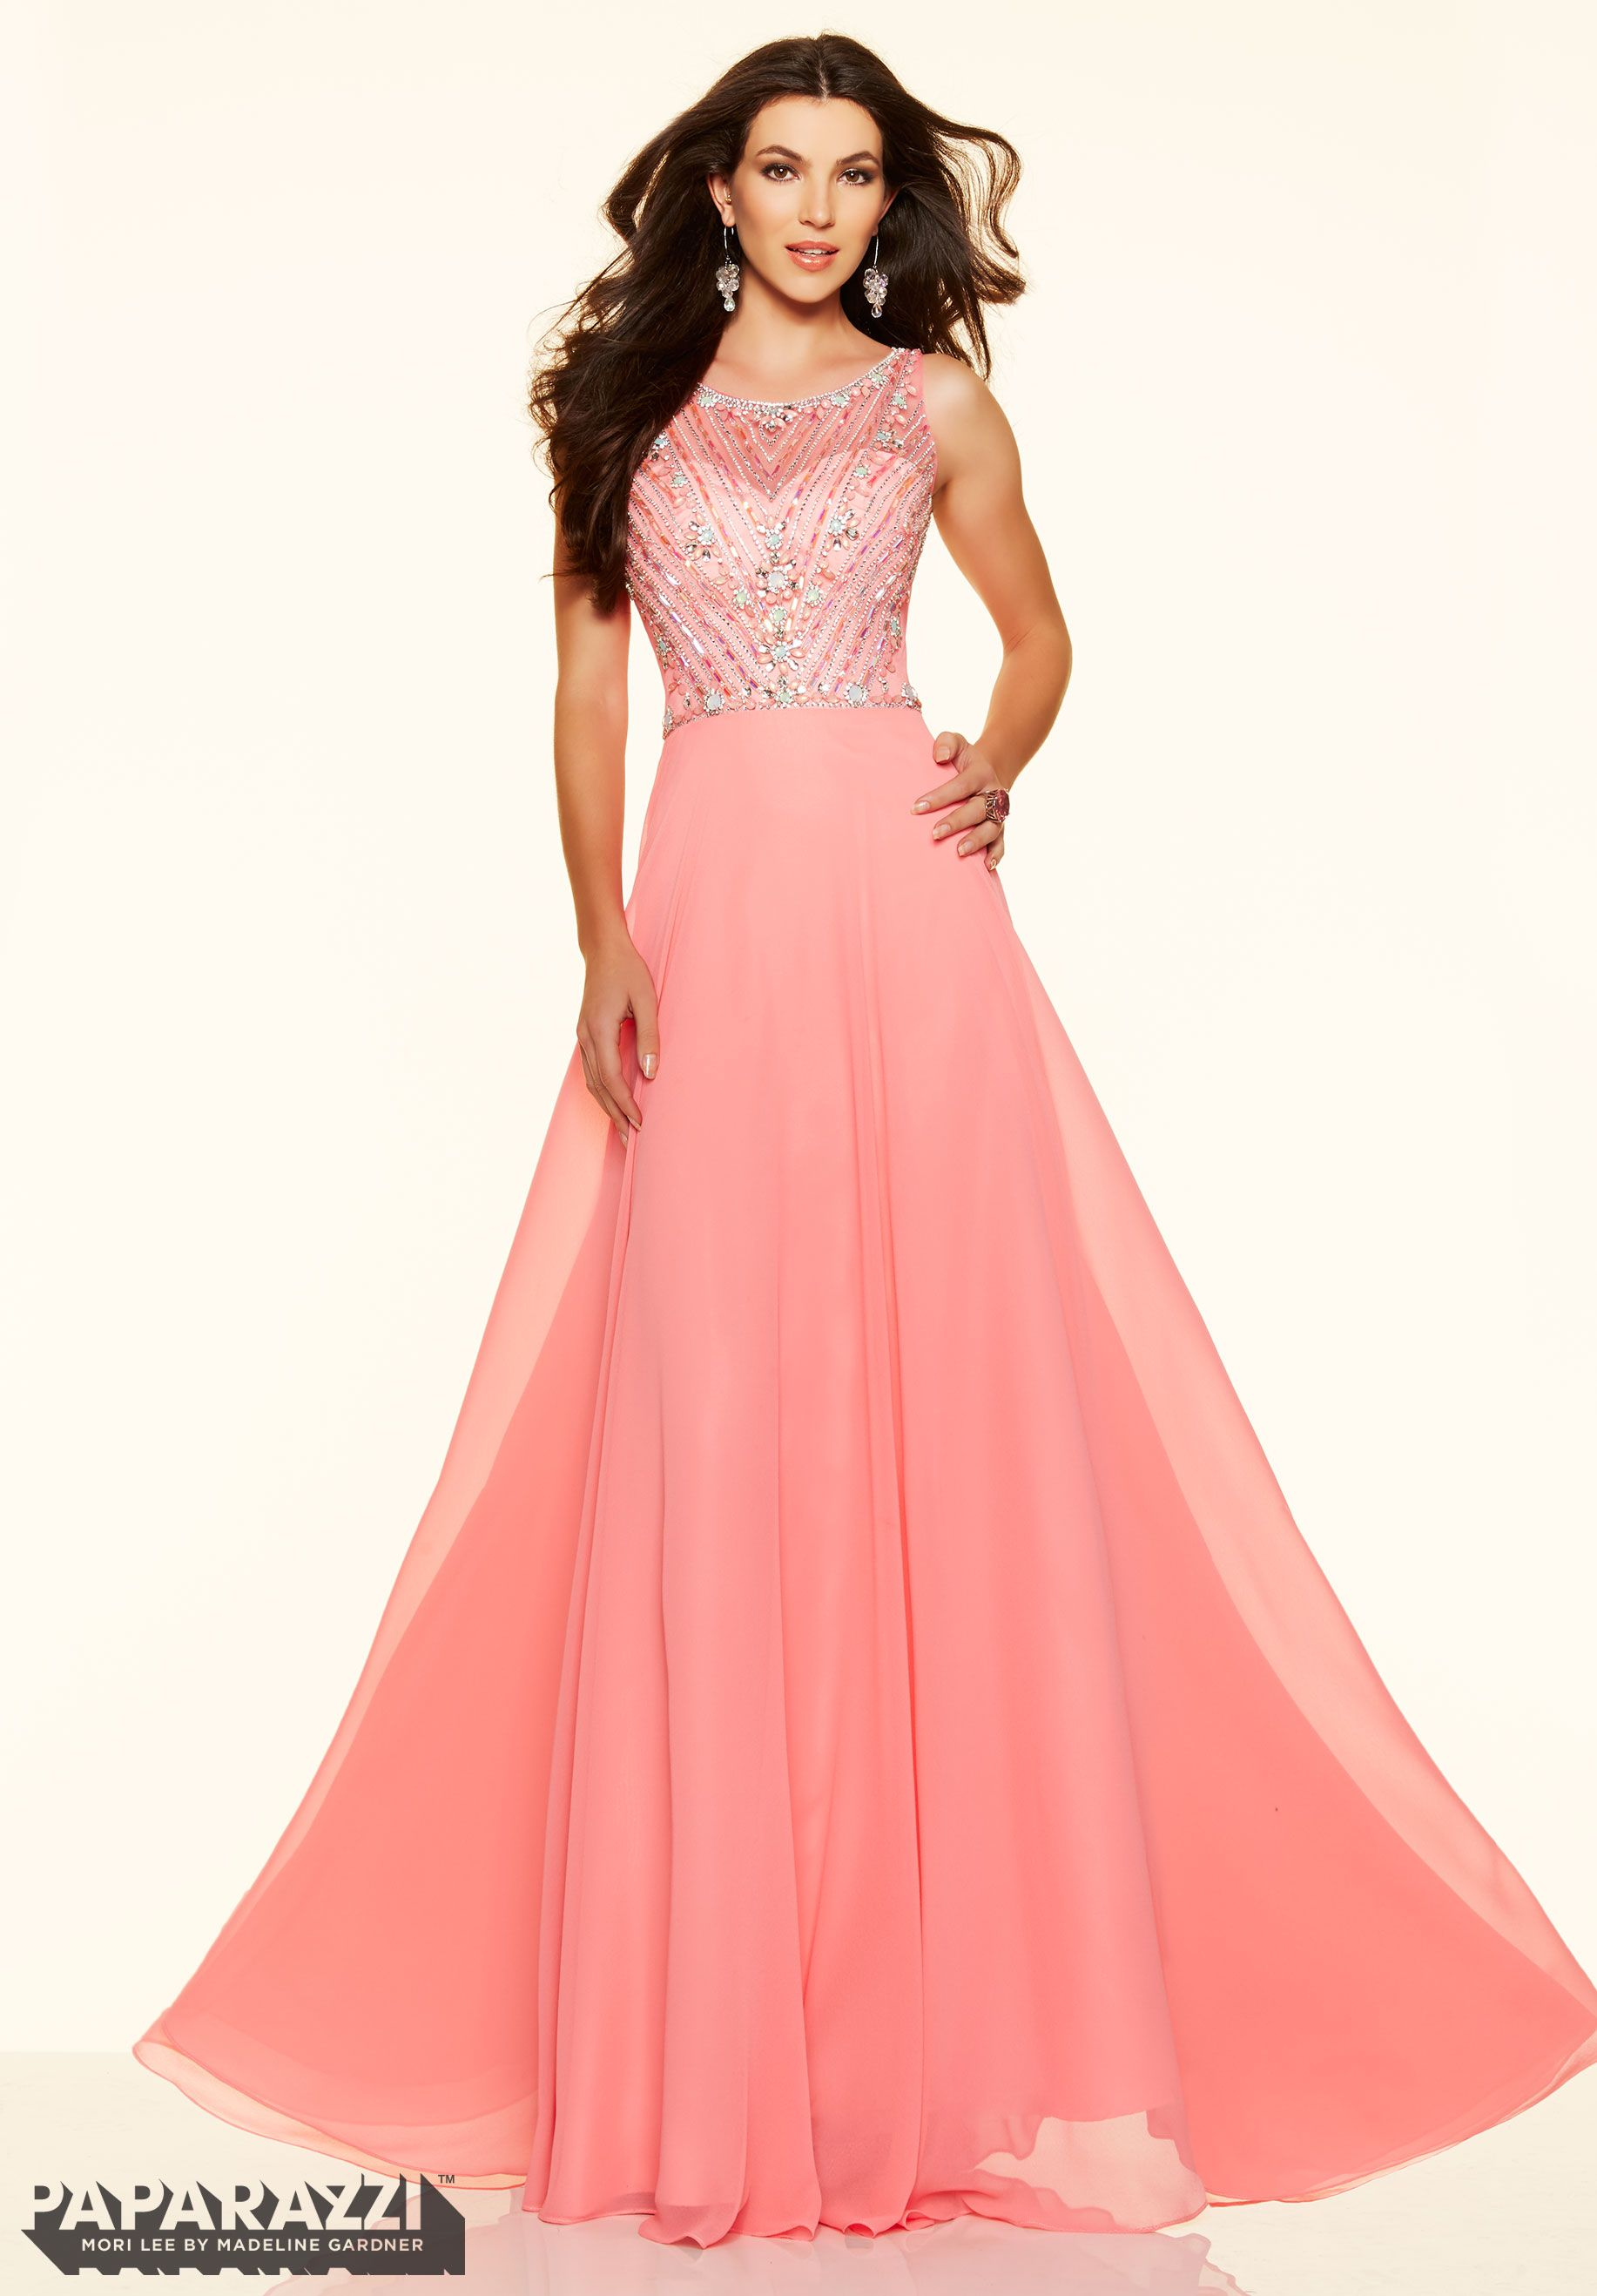 Prom Dresses by Paparazzi Prom - Dress Style 98015 | PROM ...